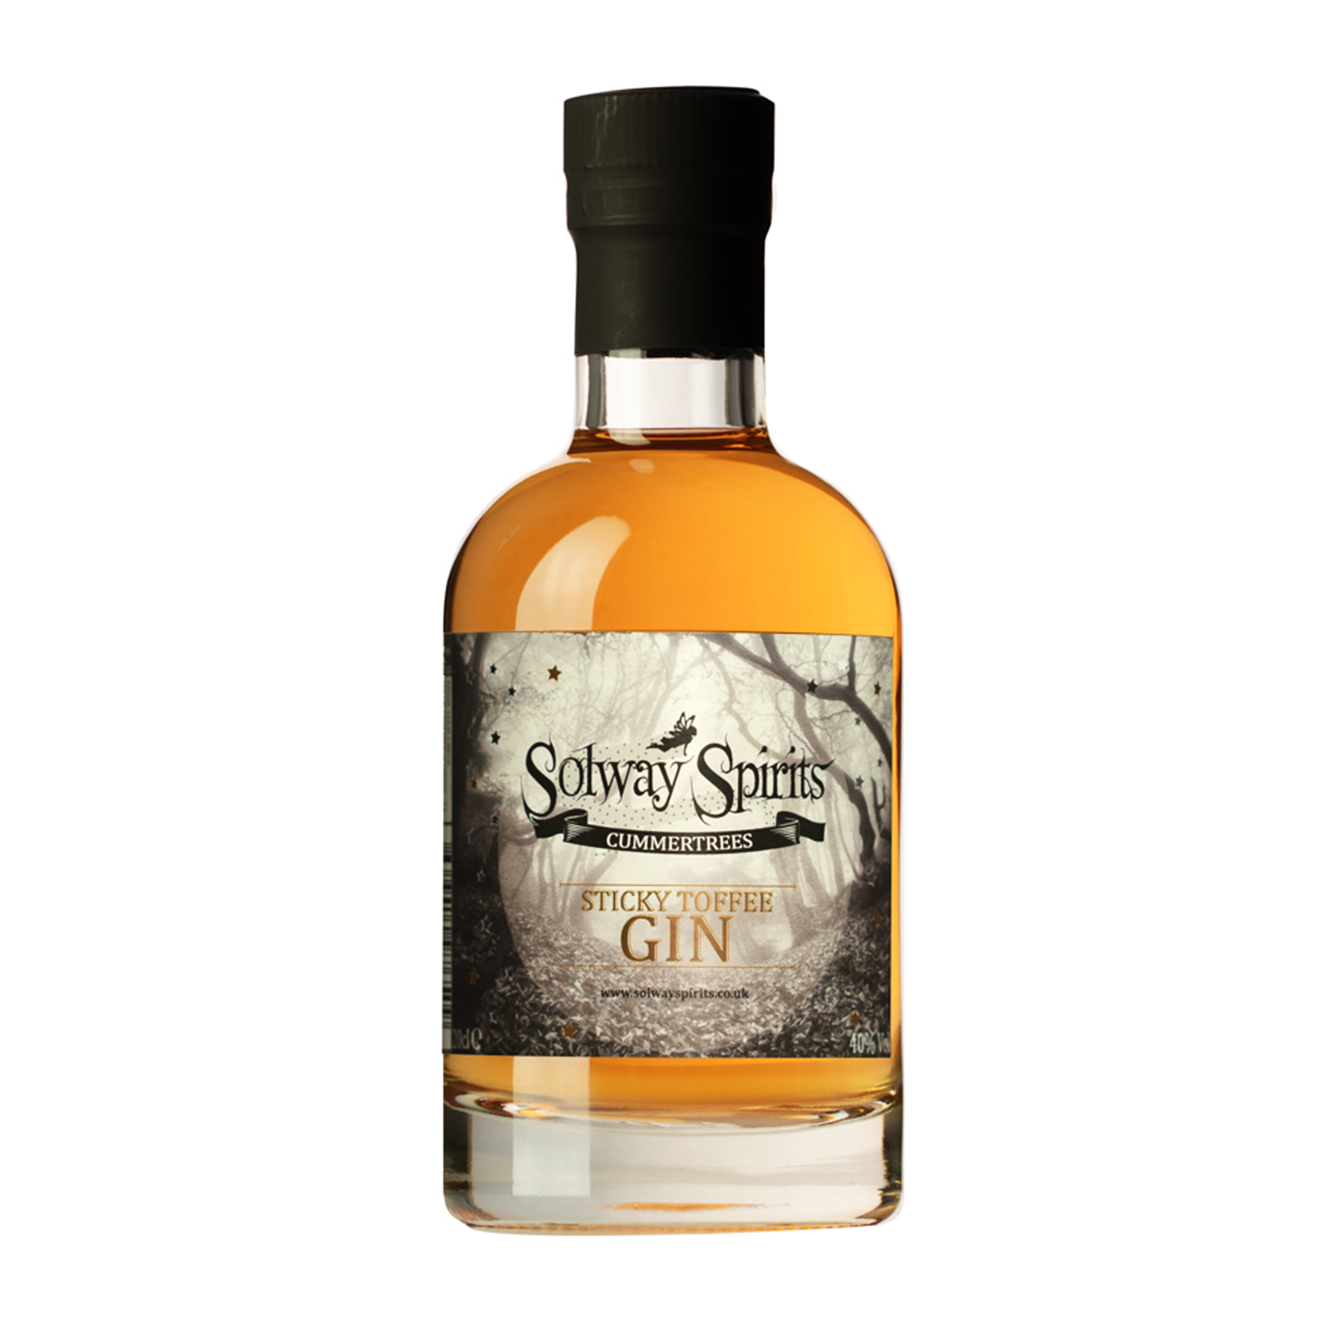 Solway Spirits Sticky Toffee Gin